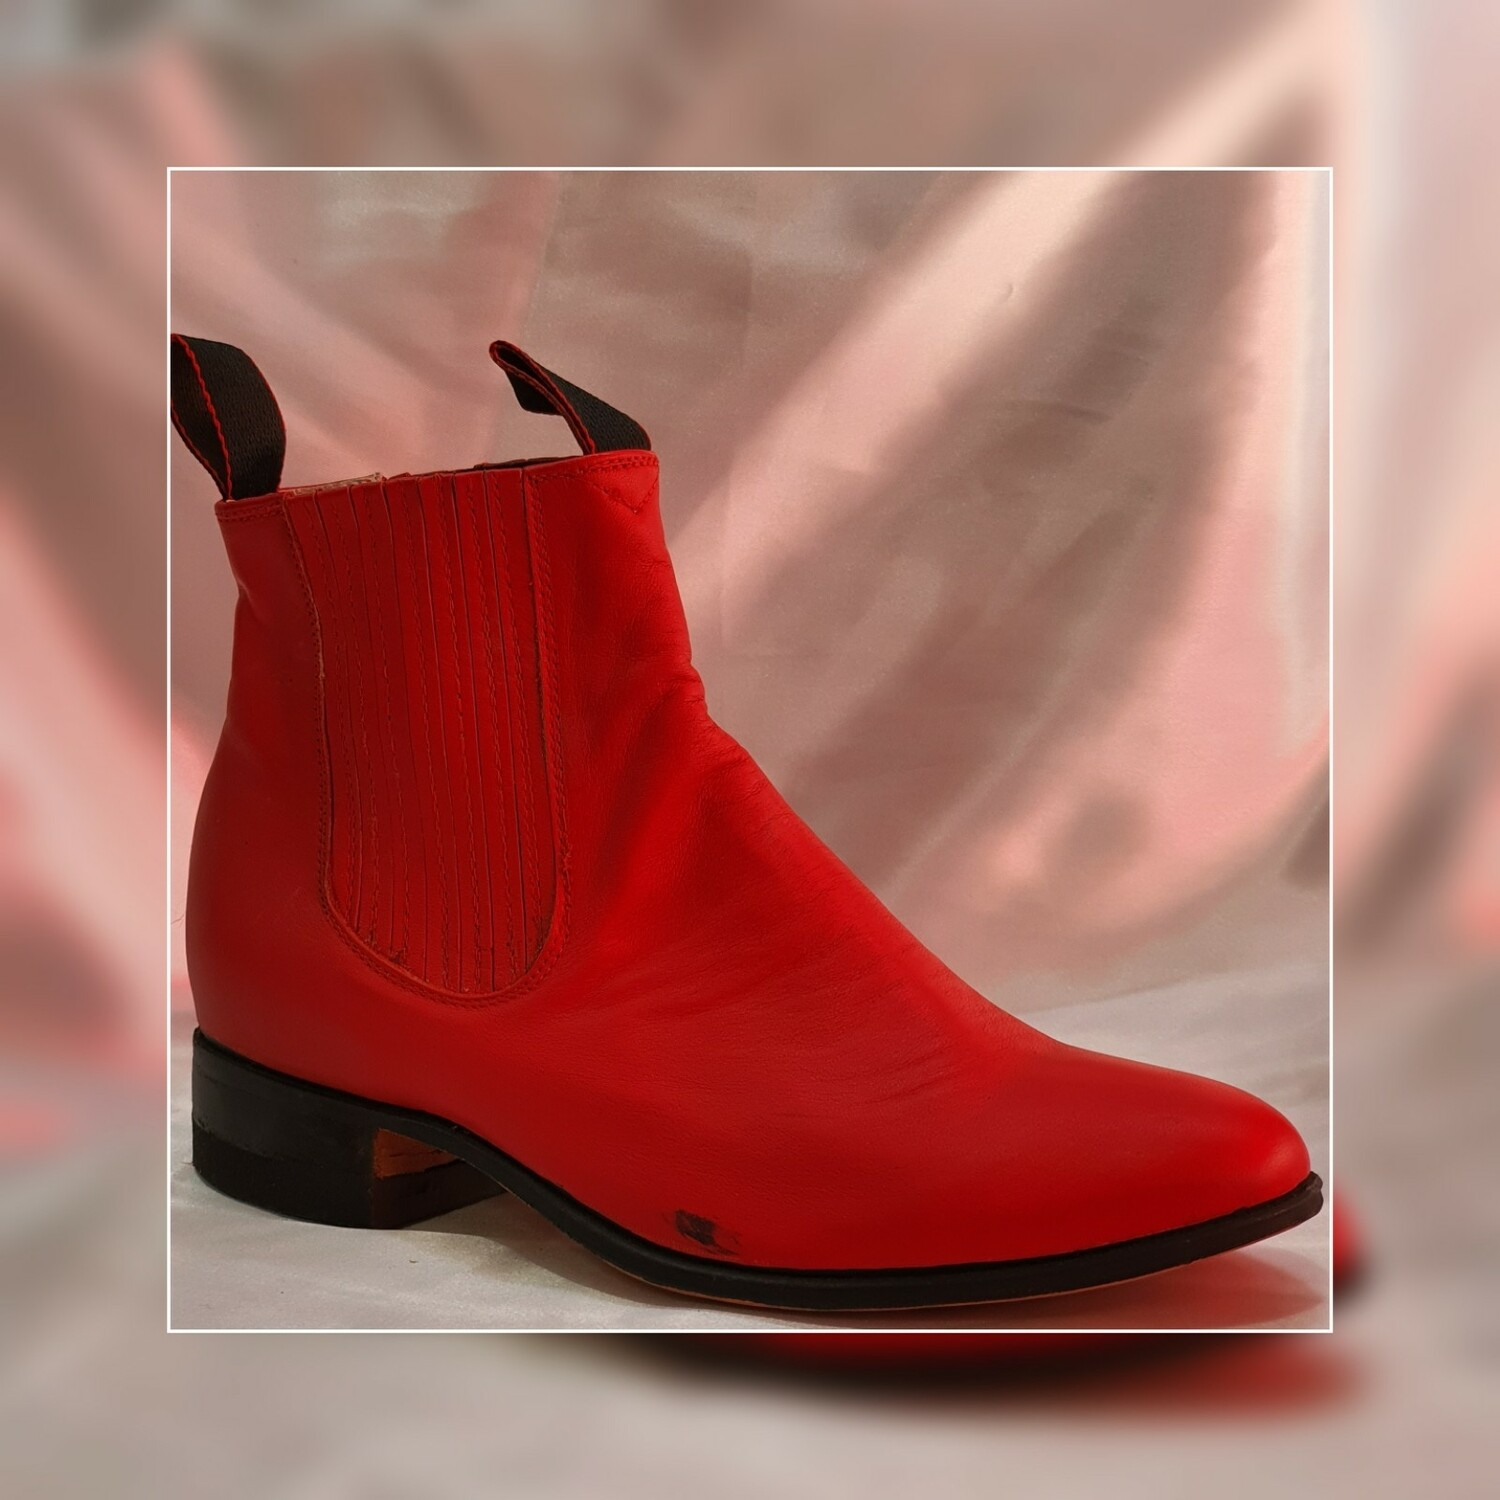 Booty Villa del Carbón Classic sole cowboy color: Red